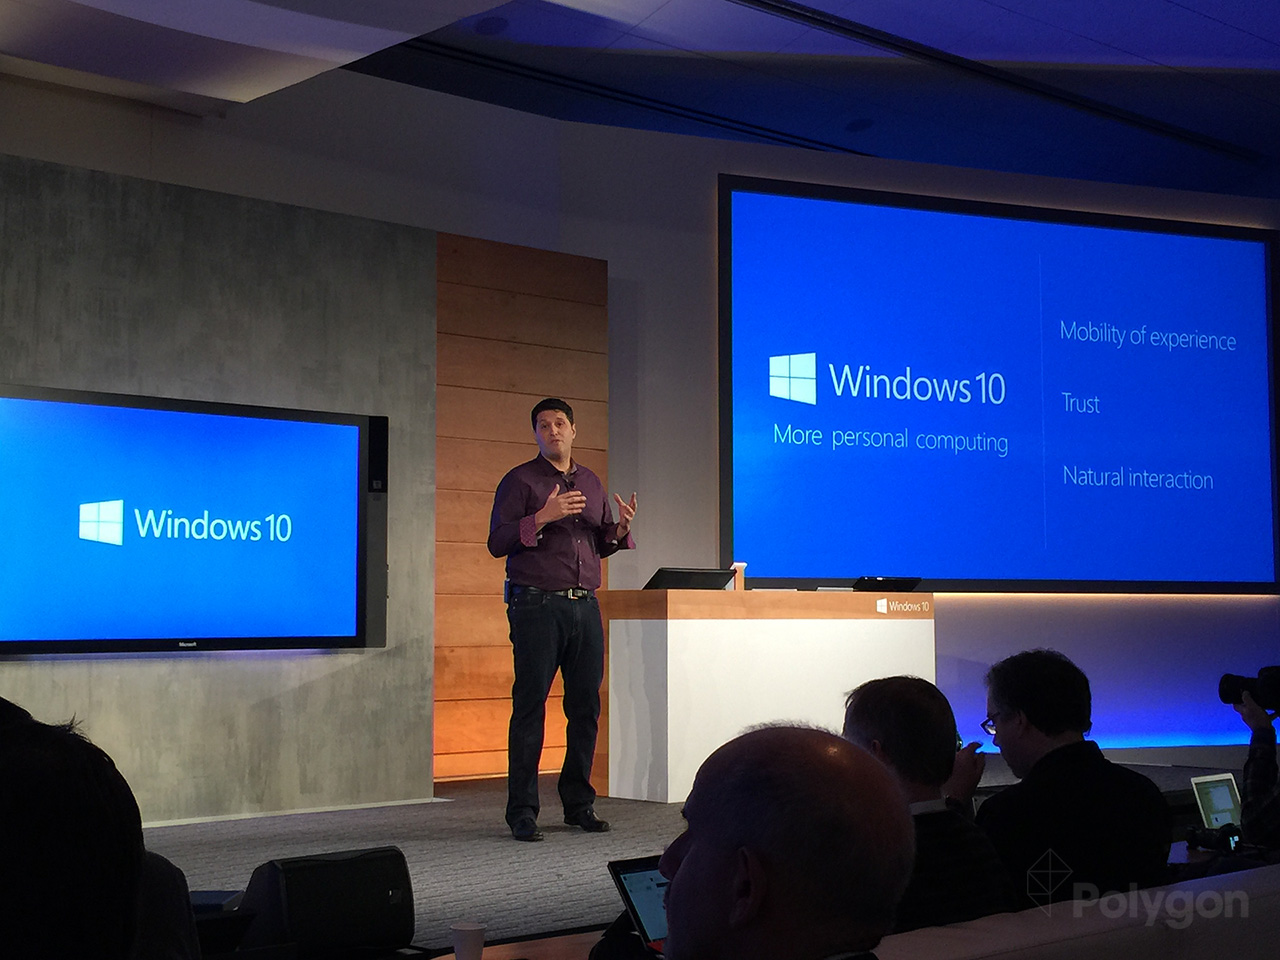 Windows 10 upgrade is free for Windows 7, 8.1 and Phone 8.1 users for one year (update)